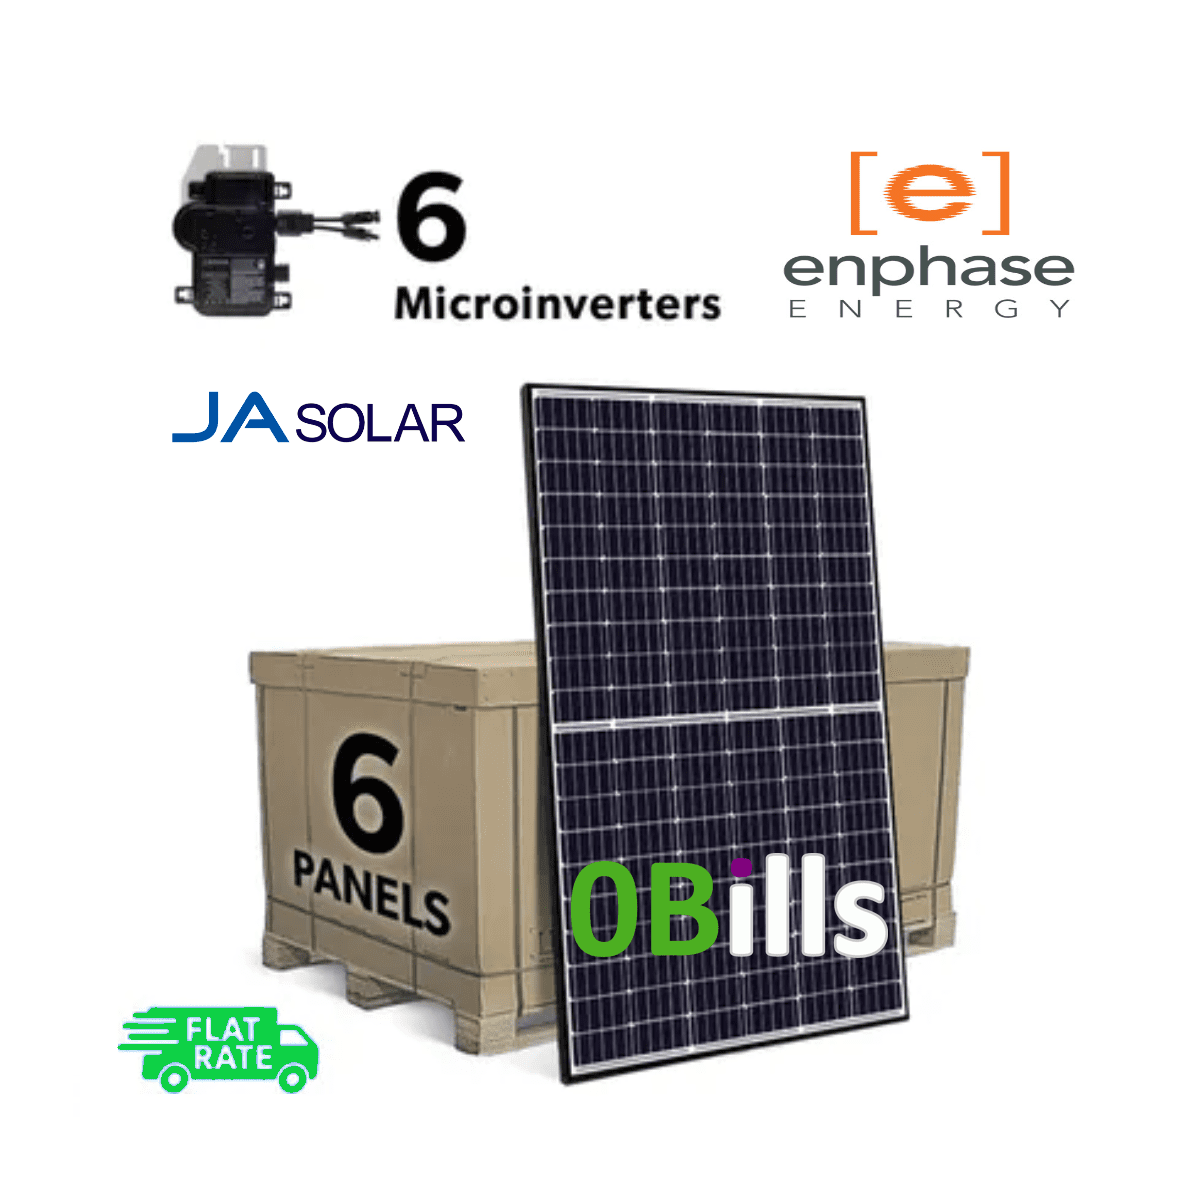 2kW DIY Solar Panel Systems Kit with Enphase IQ7A Microinverters